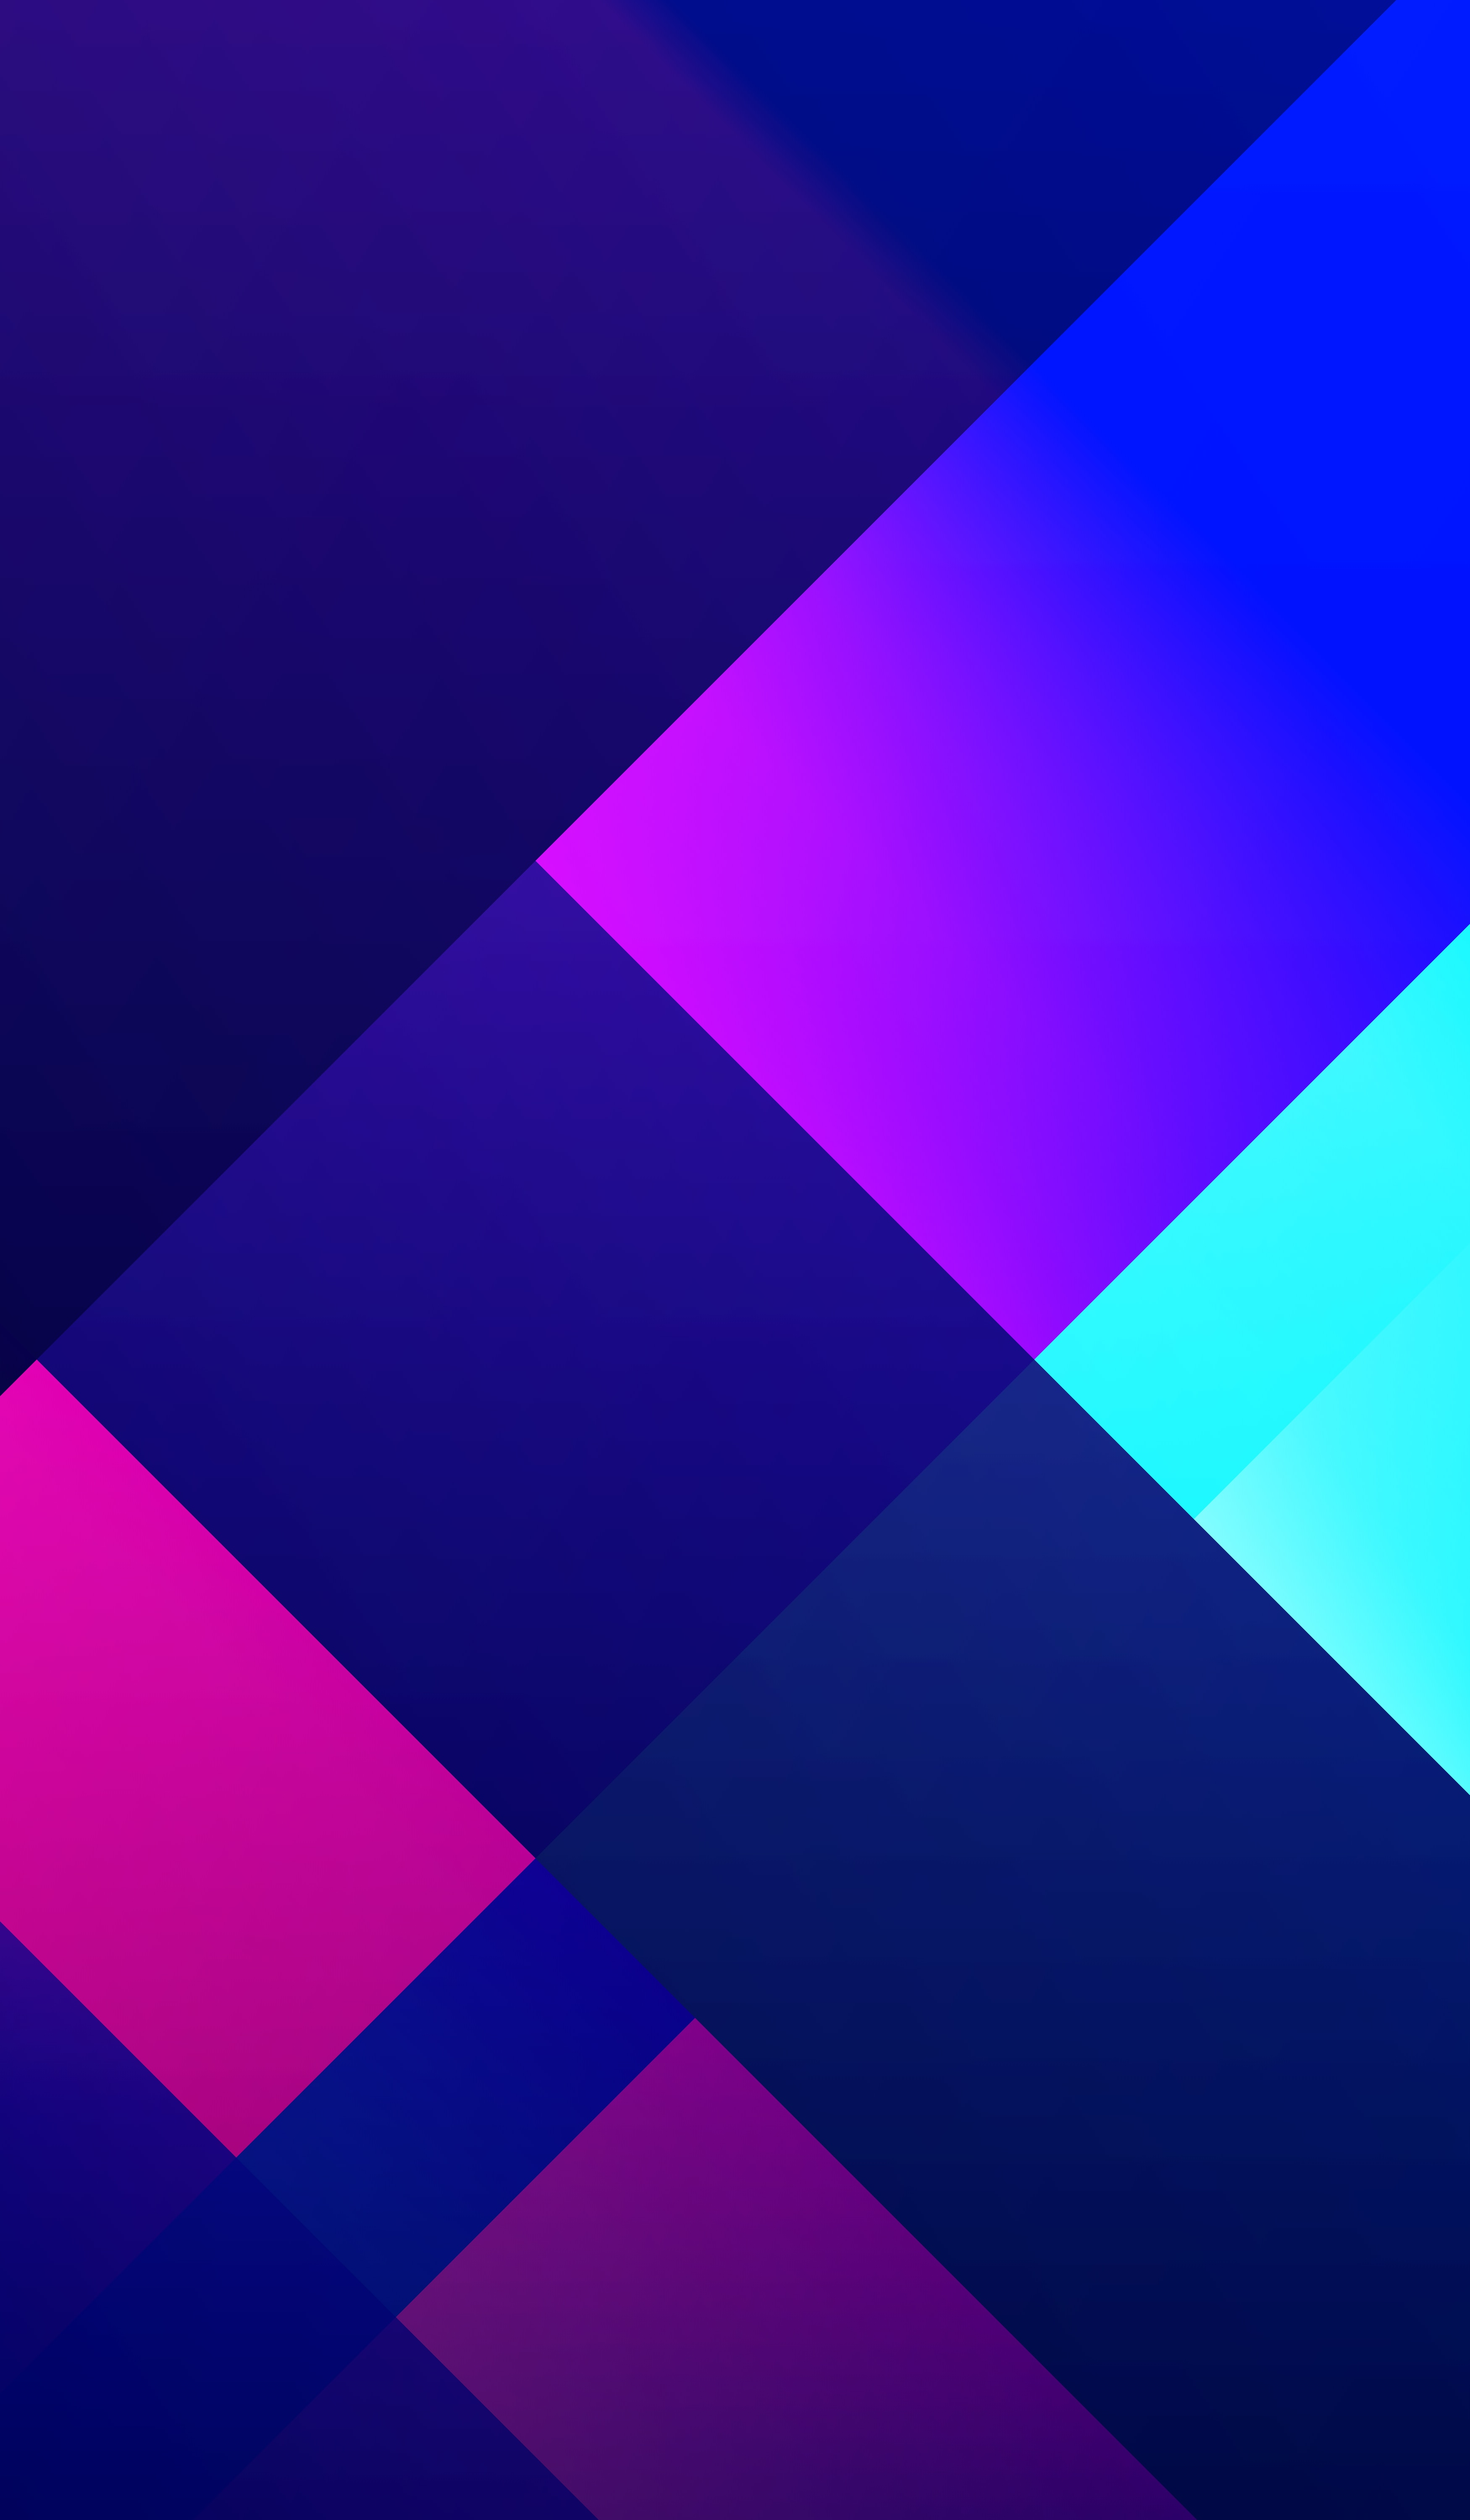 148680 download wallpaper Abstract, Gradient, Multicolored, Motley, Geometry screensavers and pictures for free